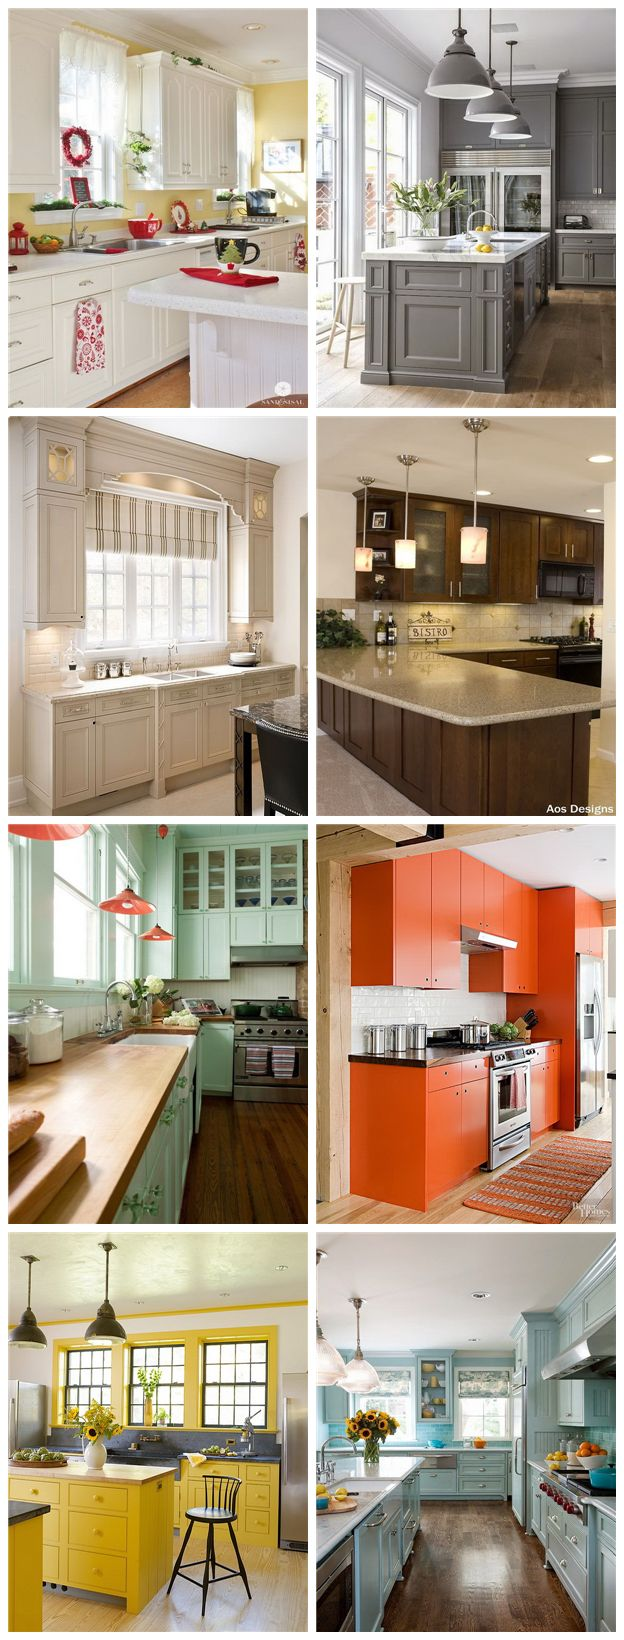 Most Popular Kitchen Cabinet Paint Color Ideas.